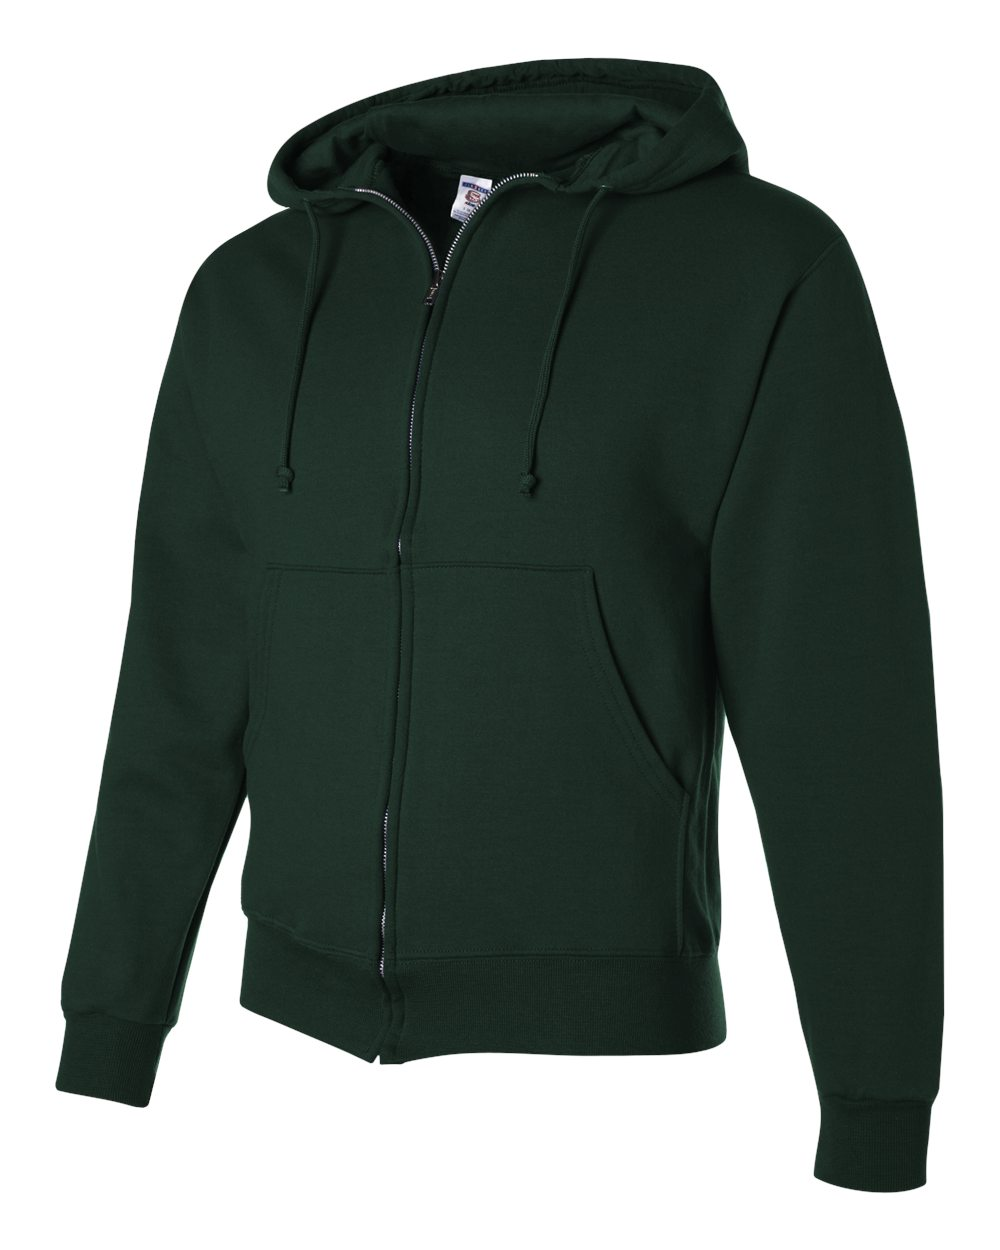 JERZEES 4999MR - NuBlend SUPER SWEATS Full-Zip Hooded Sweatshirt